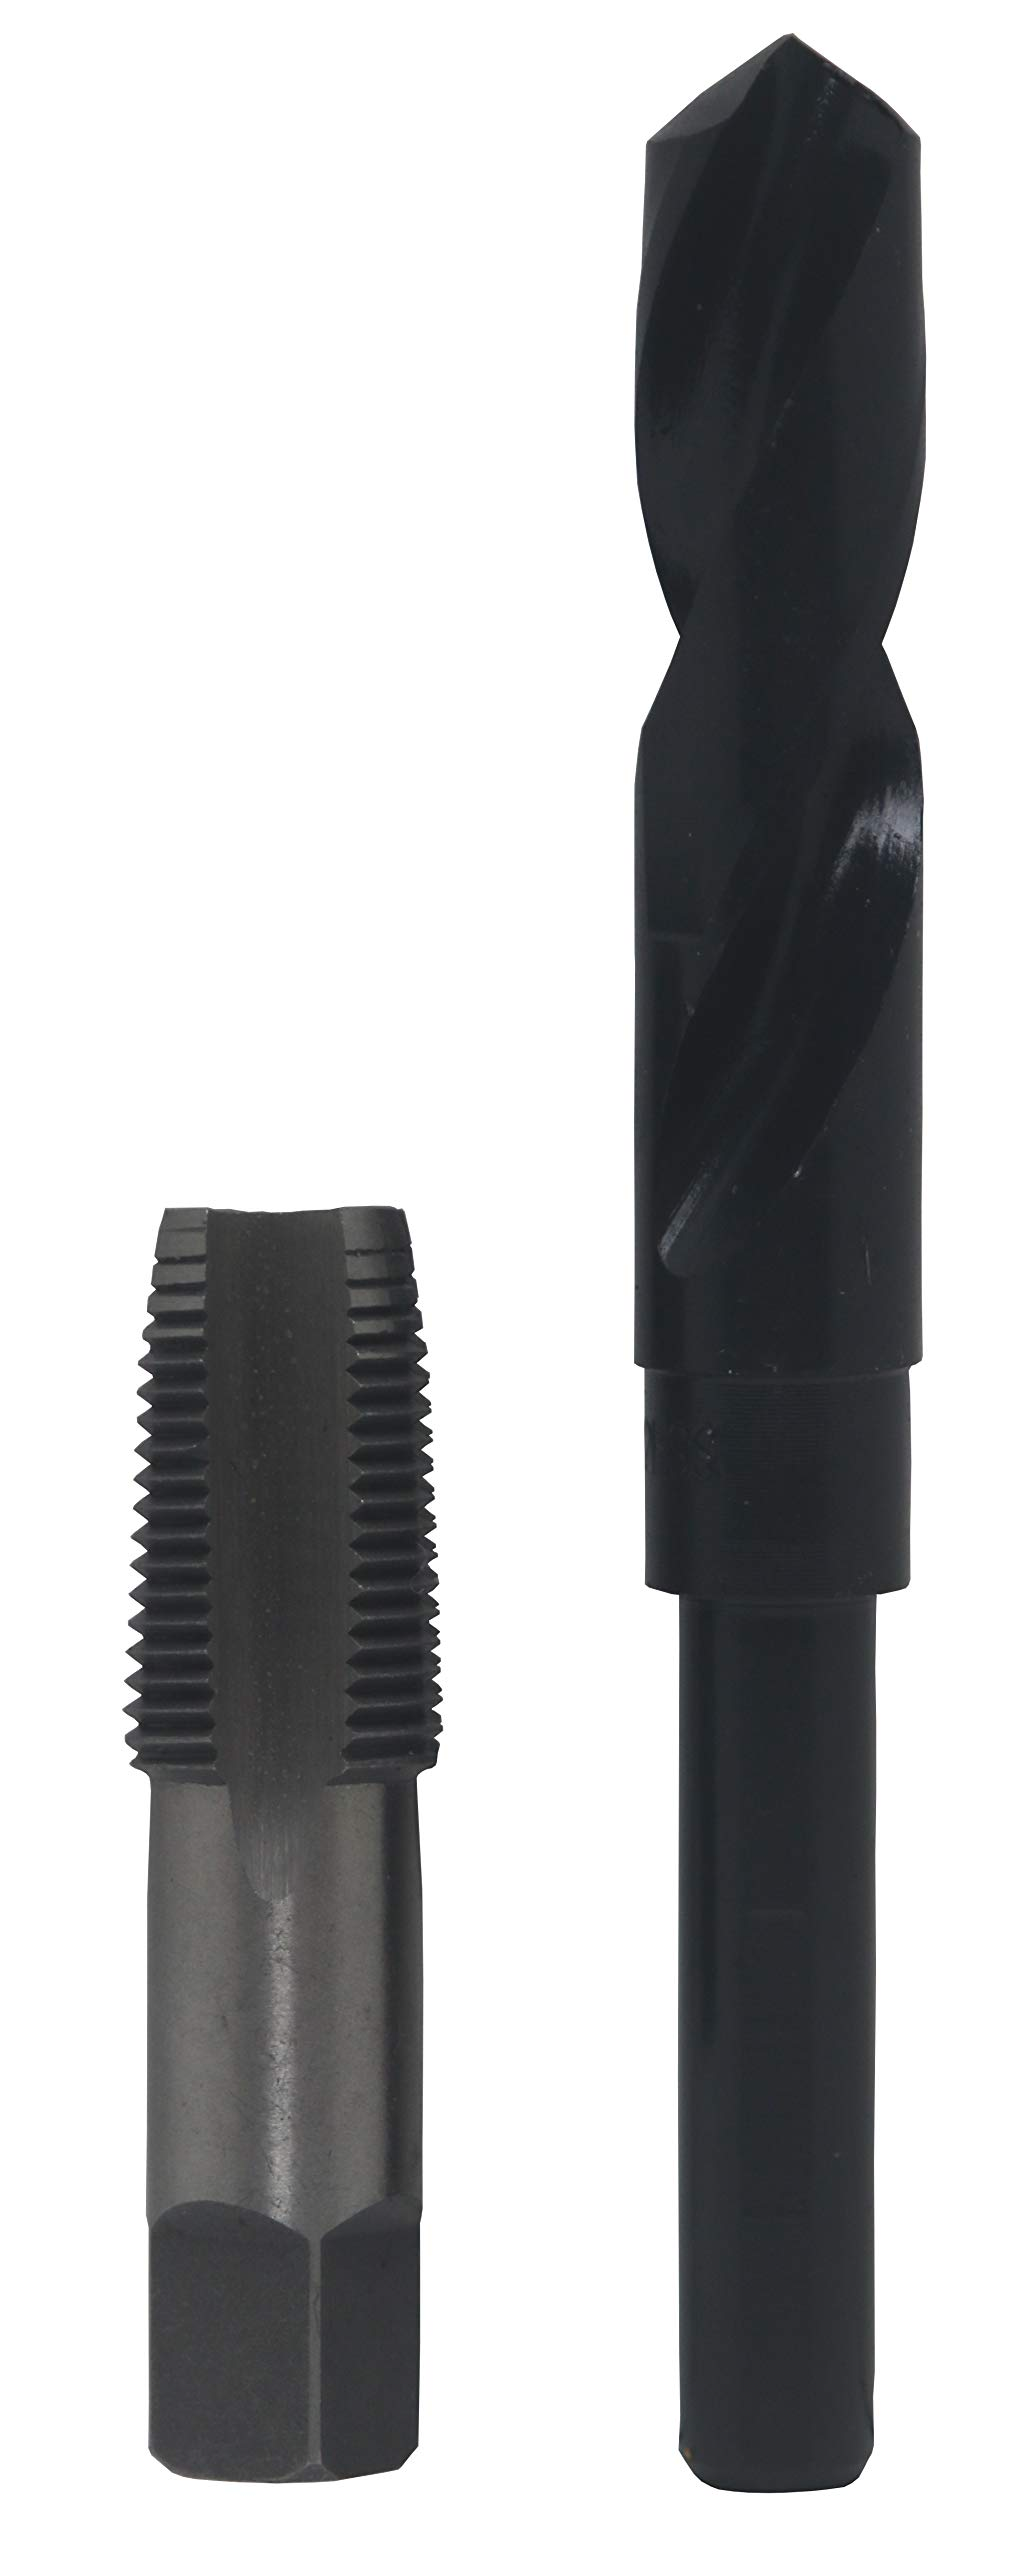 Drill America 1/2'' Carbon Steel NPT Pipe Tap and 23/32'' High Speed Steel Drill Bit Set, POU Series